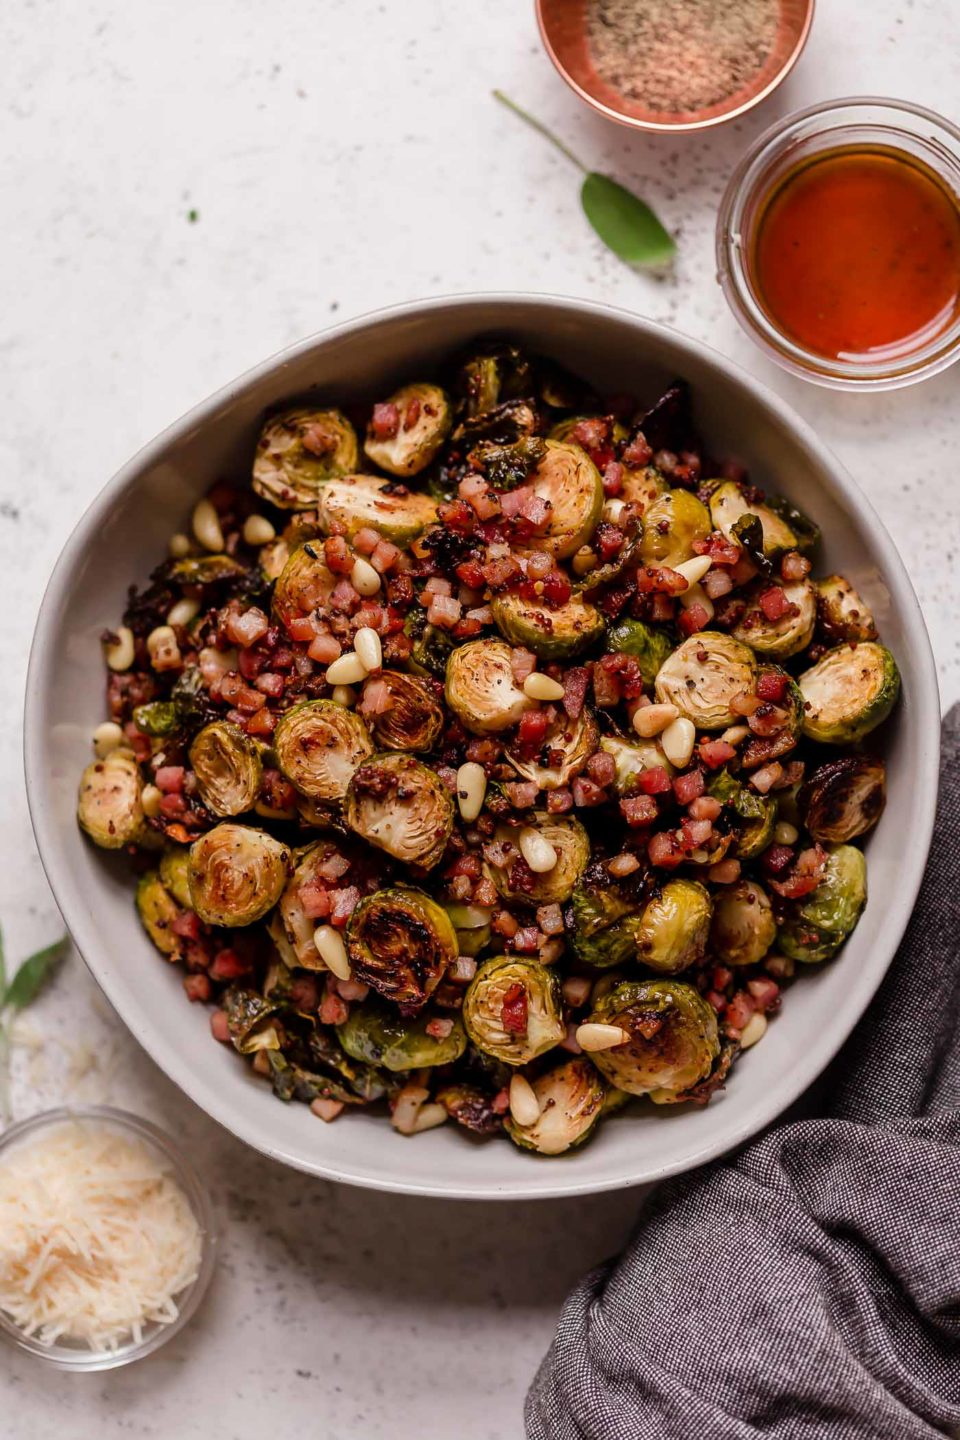 Maple mustard roasted brussels sprouts with pancetta, pine nuts, & parmesan in a large serving bowl. The bowl is on a white backdrop, surrounded by smaller bowls containing parmesan cheese, pine nuts, & mustard.